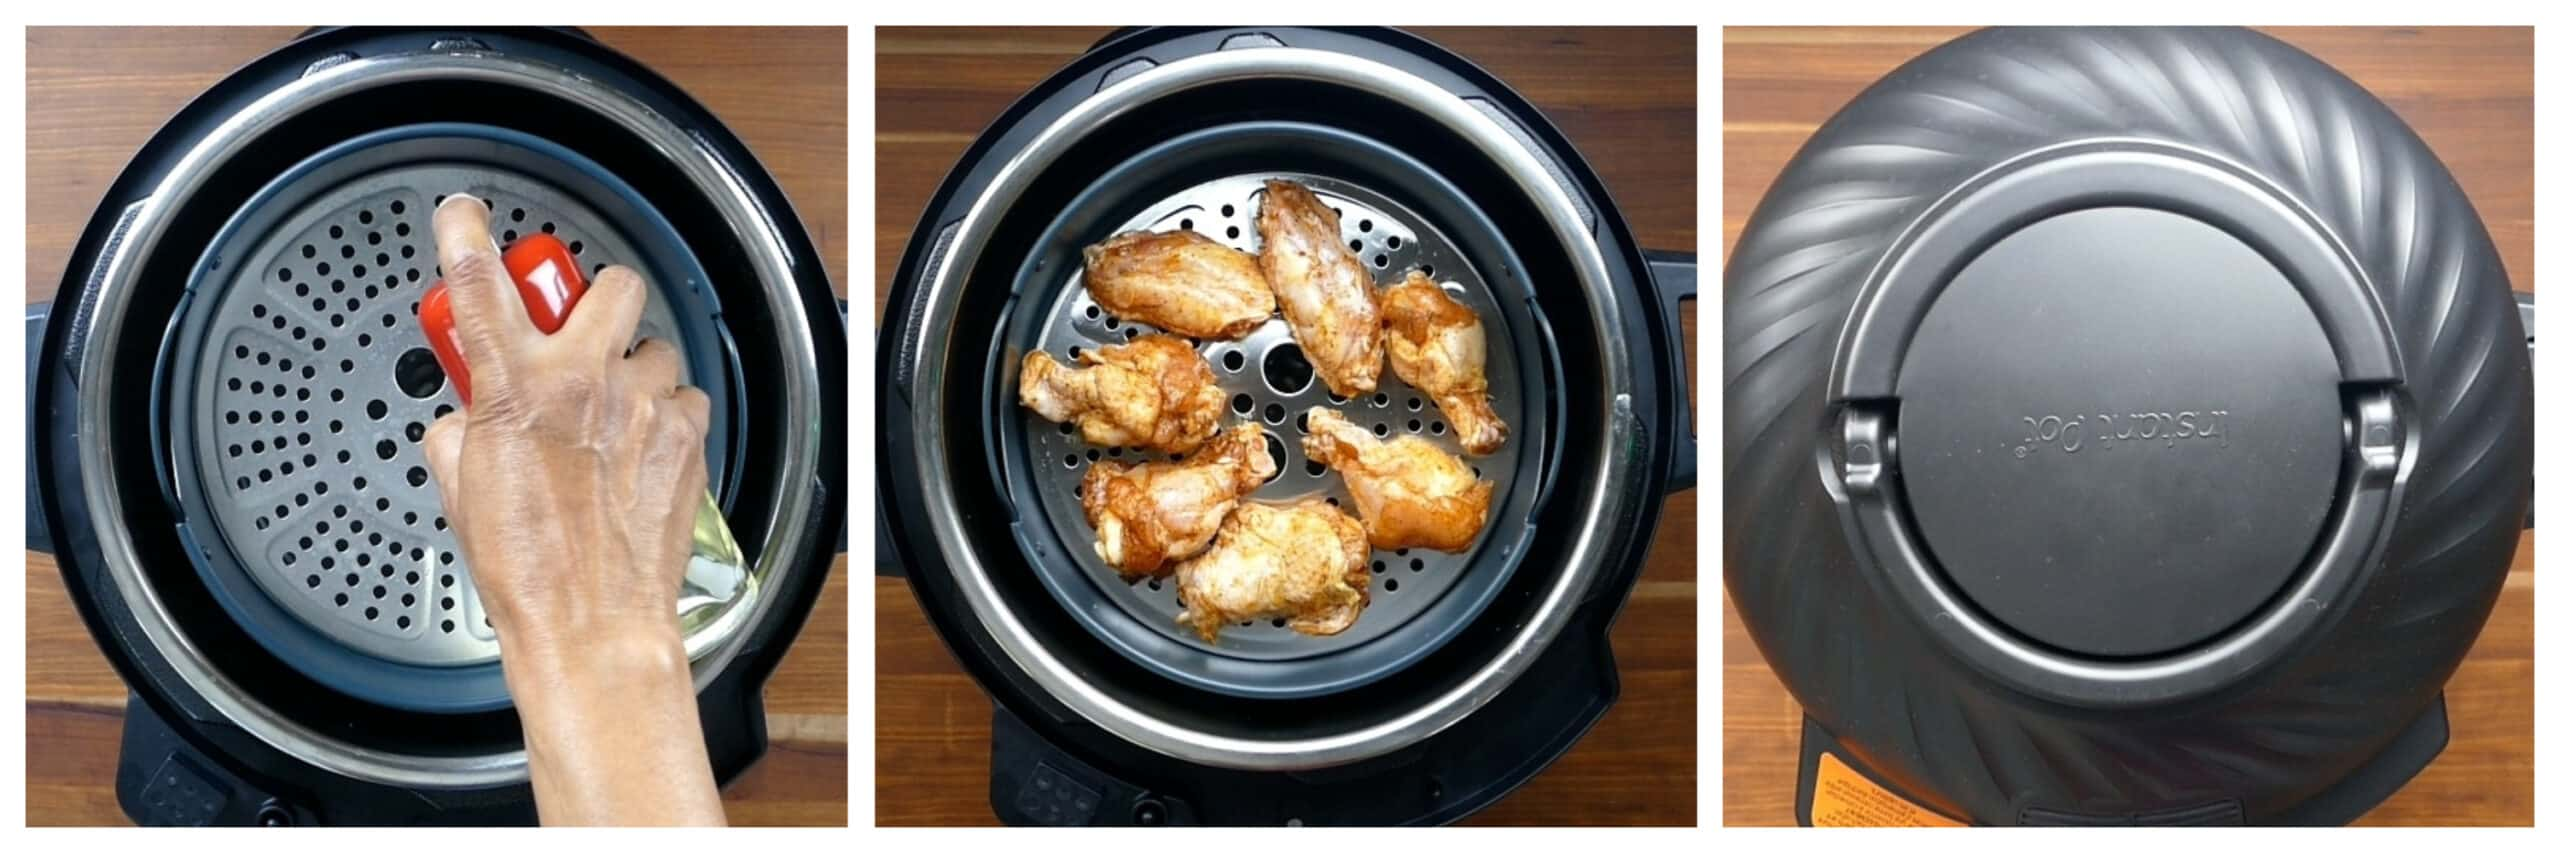 Instant Pot Air Fryer Chicken Wings Instructions collage - rack in instant pot sprayed, wings on rack, lid closed